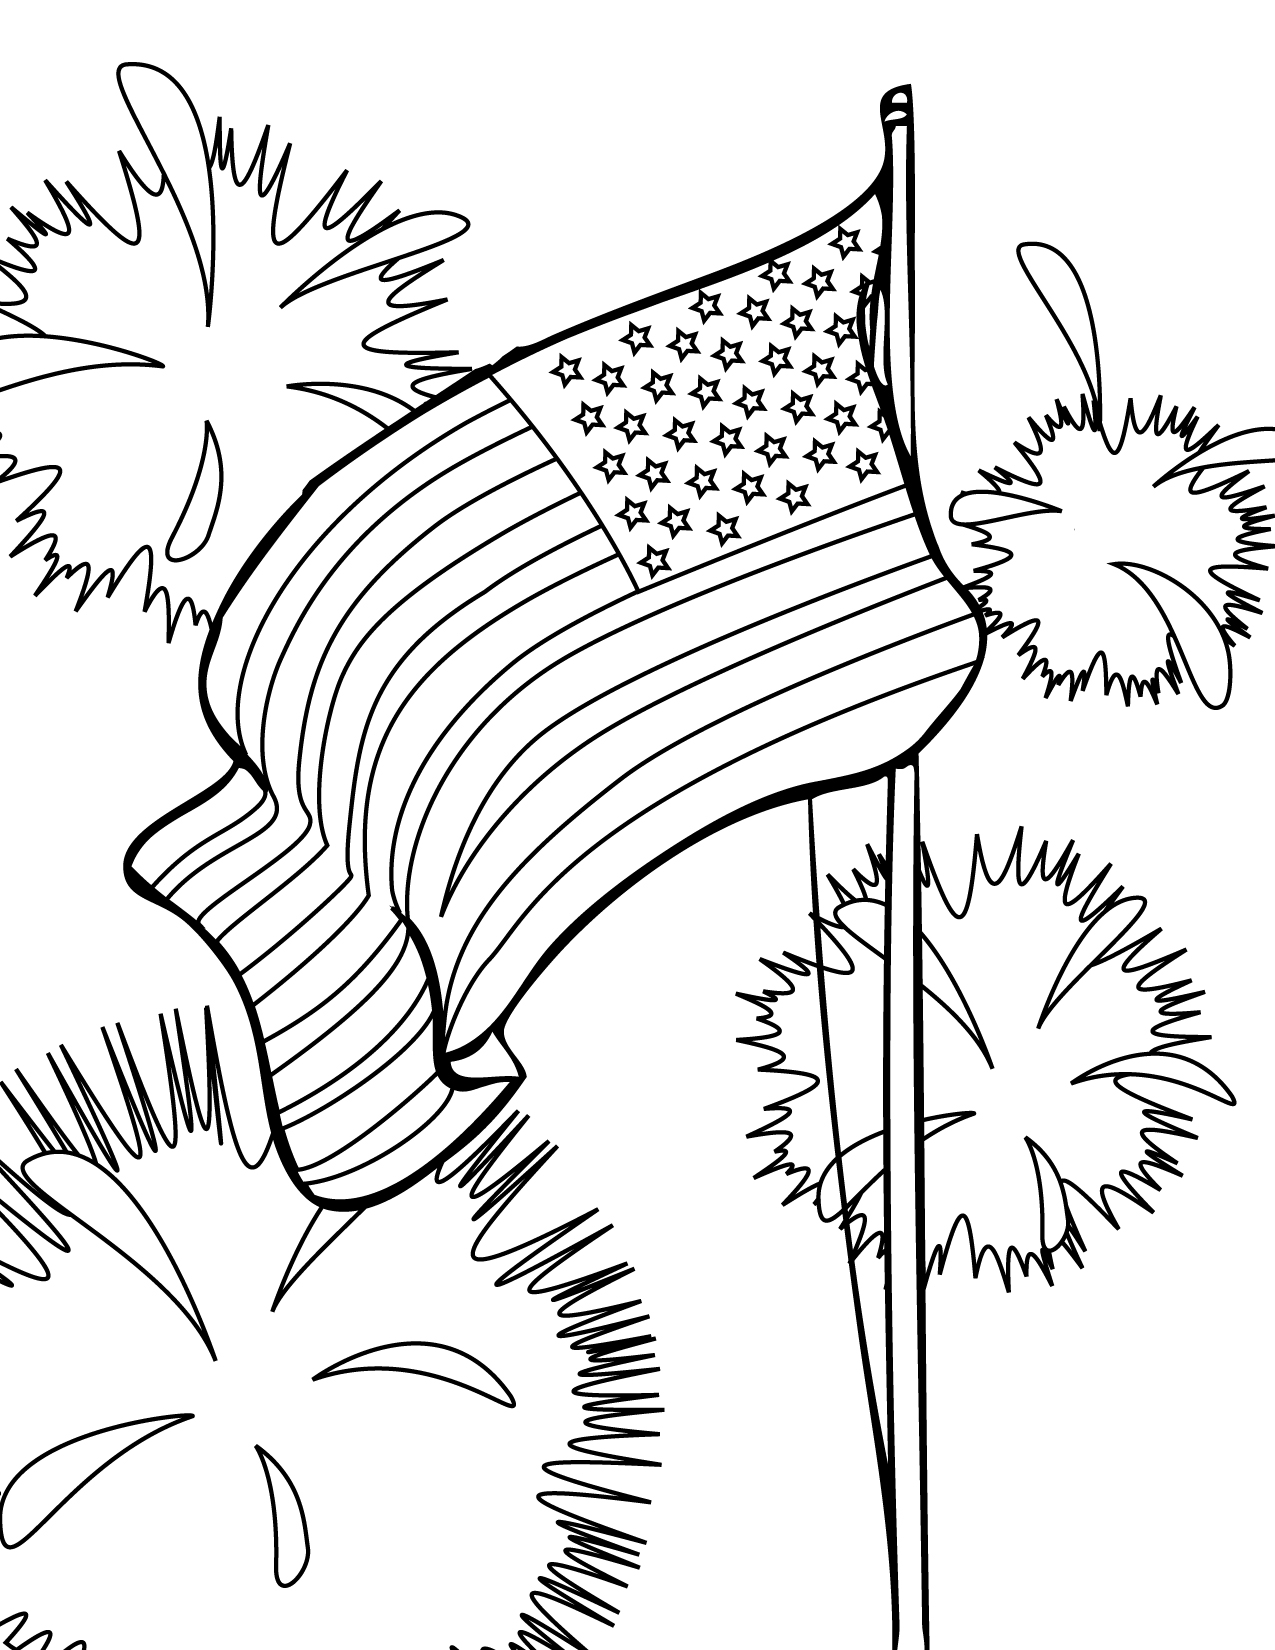 printable coloring pages patriotic - photo#24